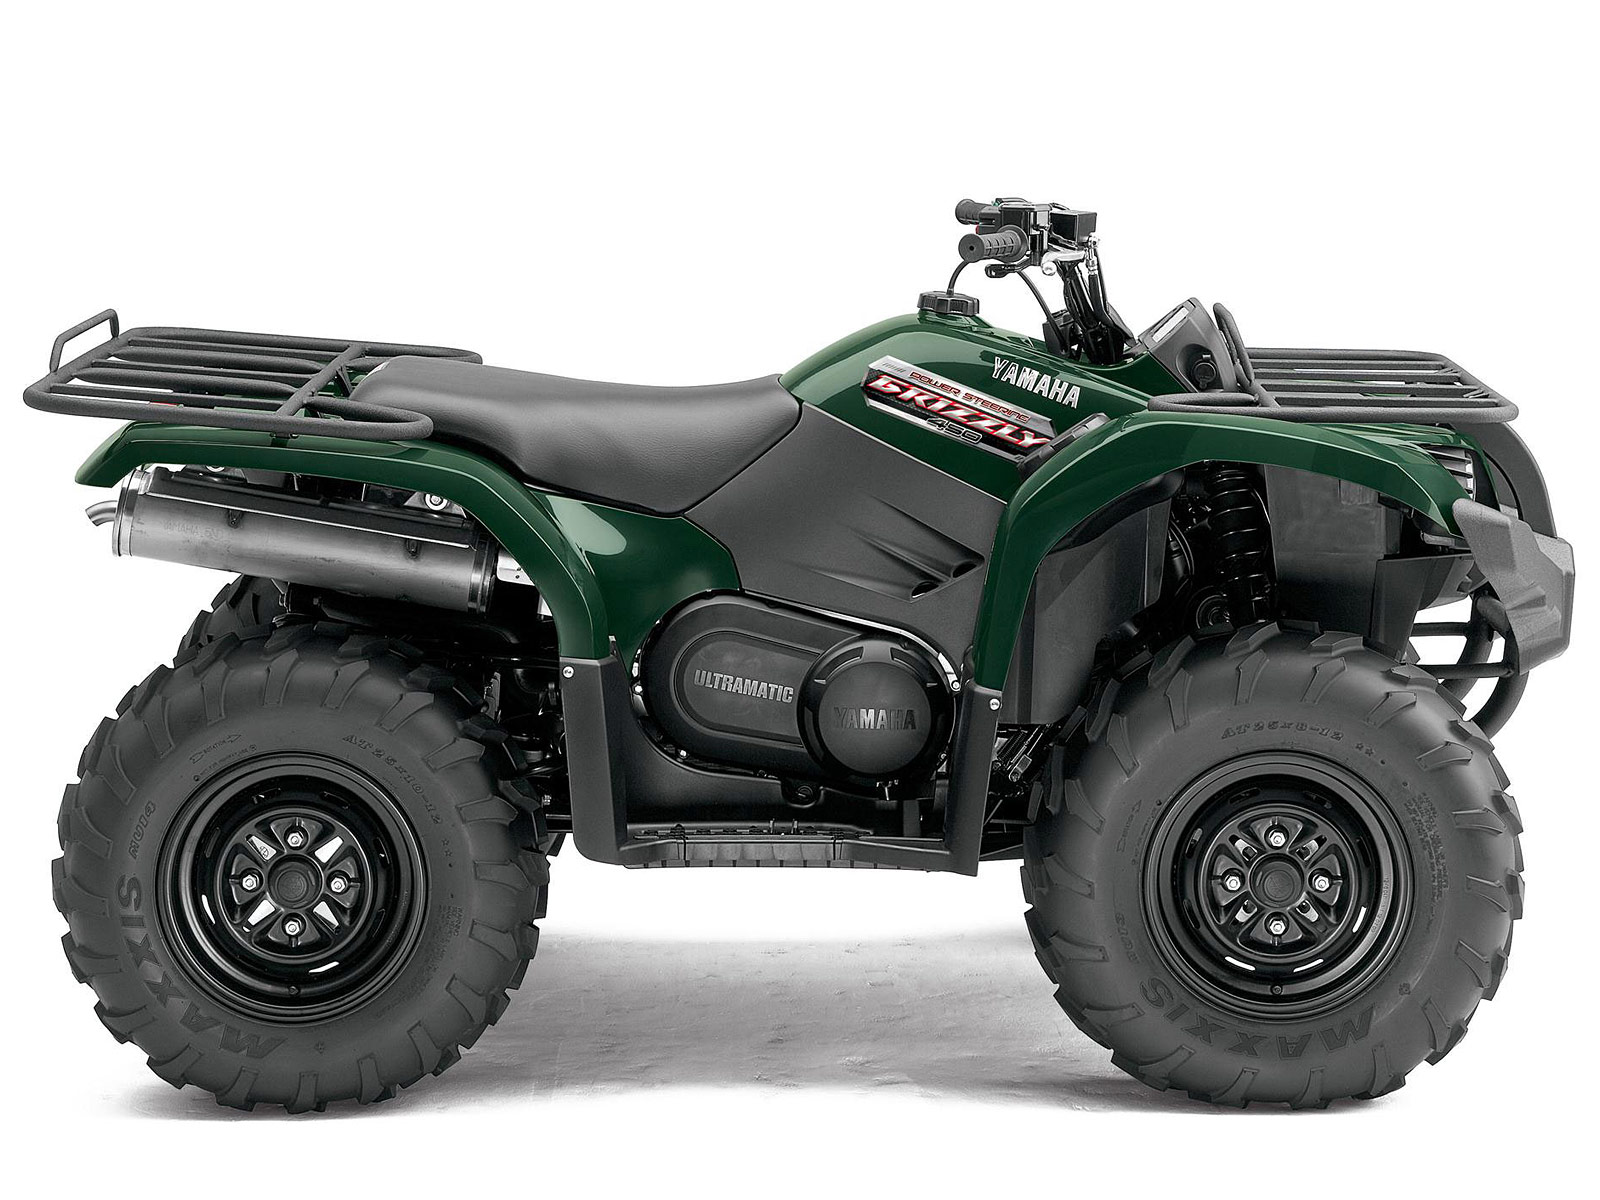 2013 yamaha grizzly 450 auto 4x4 eps atv pictures and specs. Black Bedroom Furniture Sets. Home Design Ideas